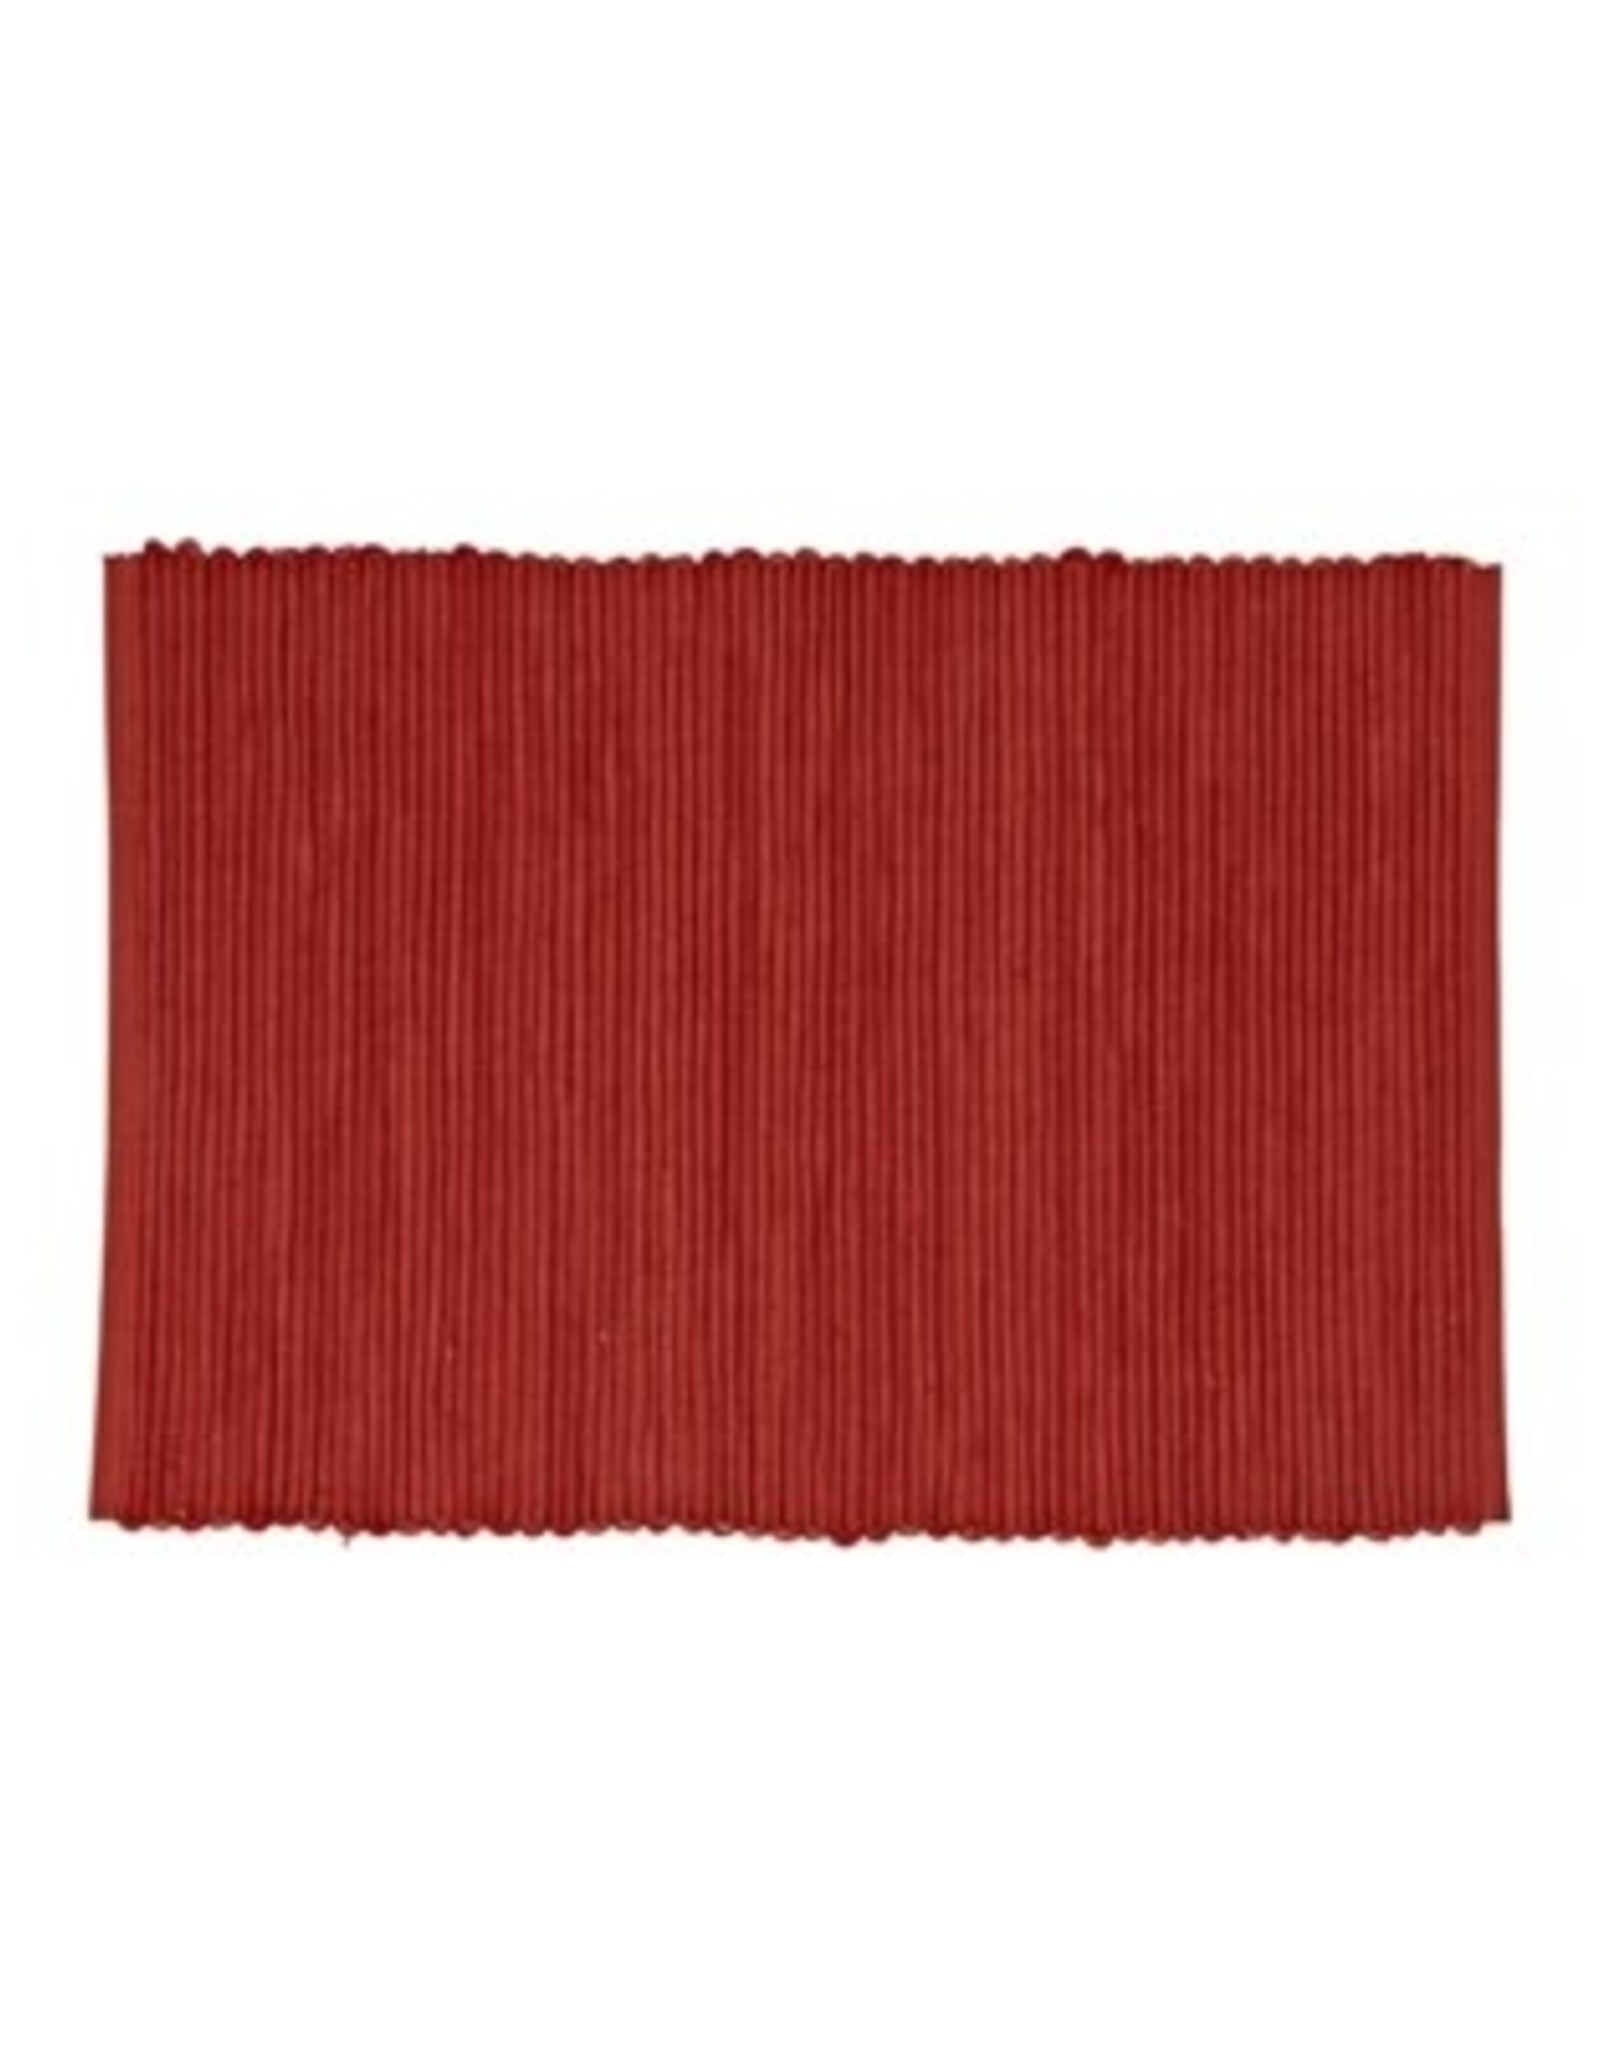 Placemat Harman Two Tone Russet